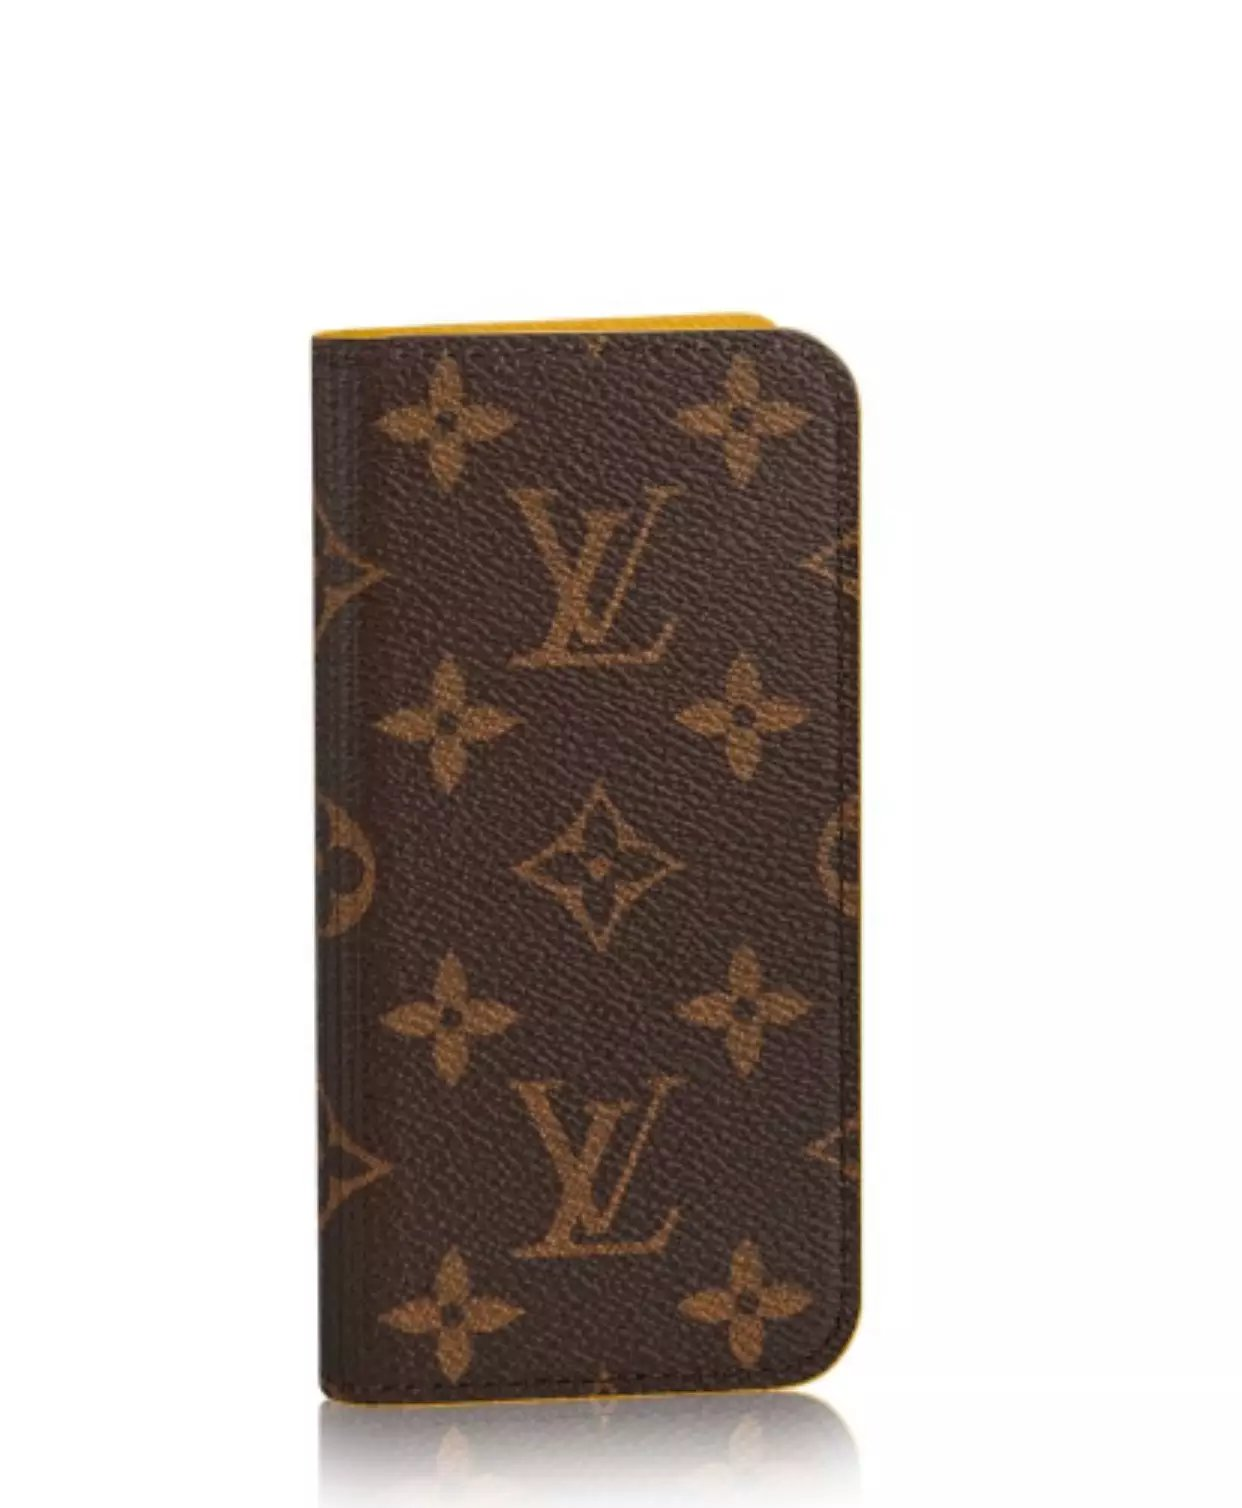 iphone 8 Plus case designer cases for the iphone 8 Plus Louis Vuitton iphone 8 Plus case sell phone cases iphone 8 Plus designer wallet case phone cases for iPhone 8 Plus s iPhone 8 Plus covers apple store the phone case shop iphone 8 Plus covers